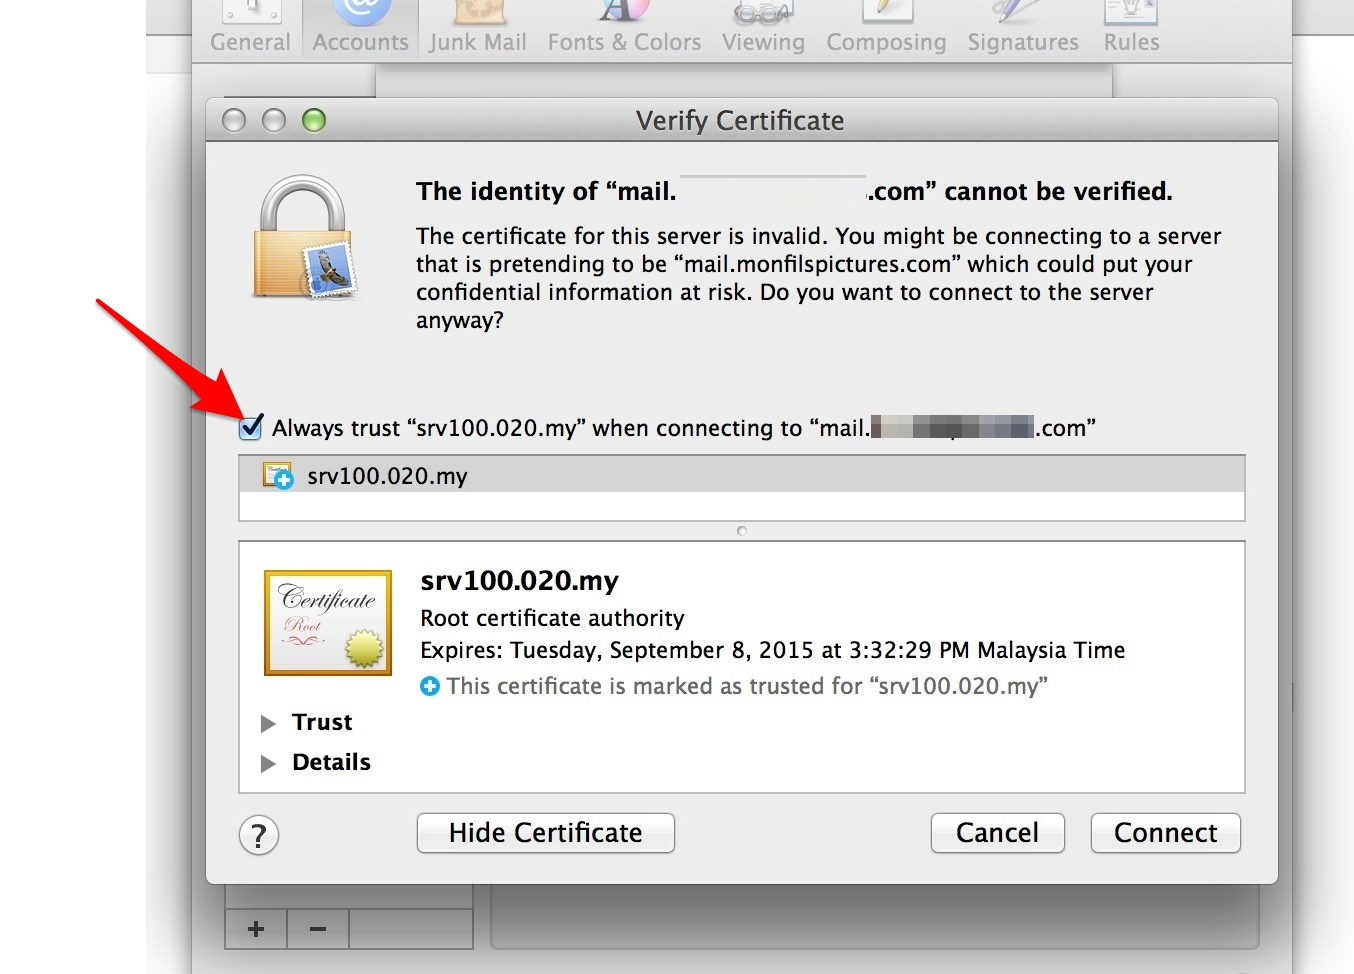 Creating mac mail account knowledgebase o2o digital after that it will prompt to verify ssl certificate please check tick to always trust otherwise connection wont be able to established and it will xflitez Image collections